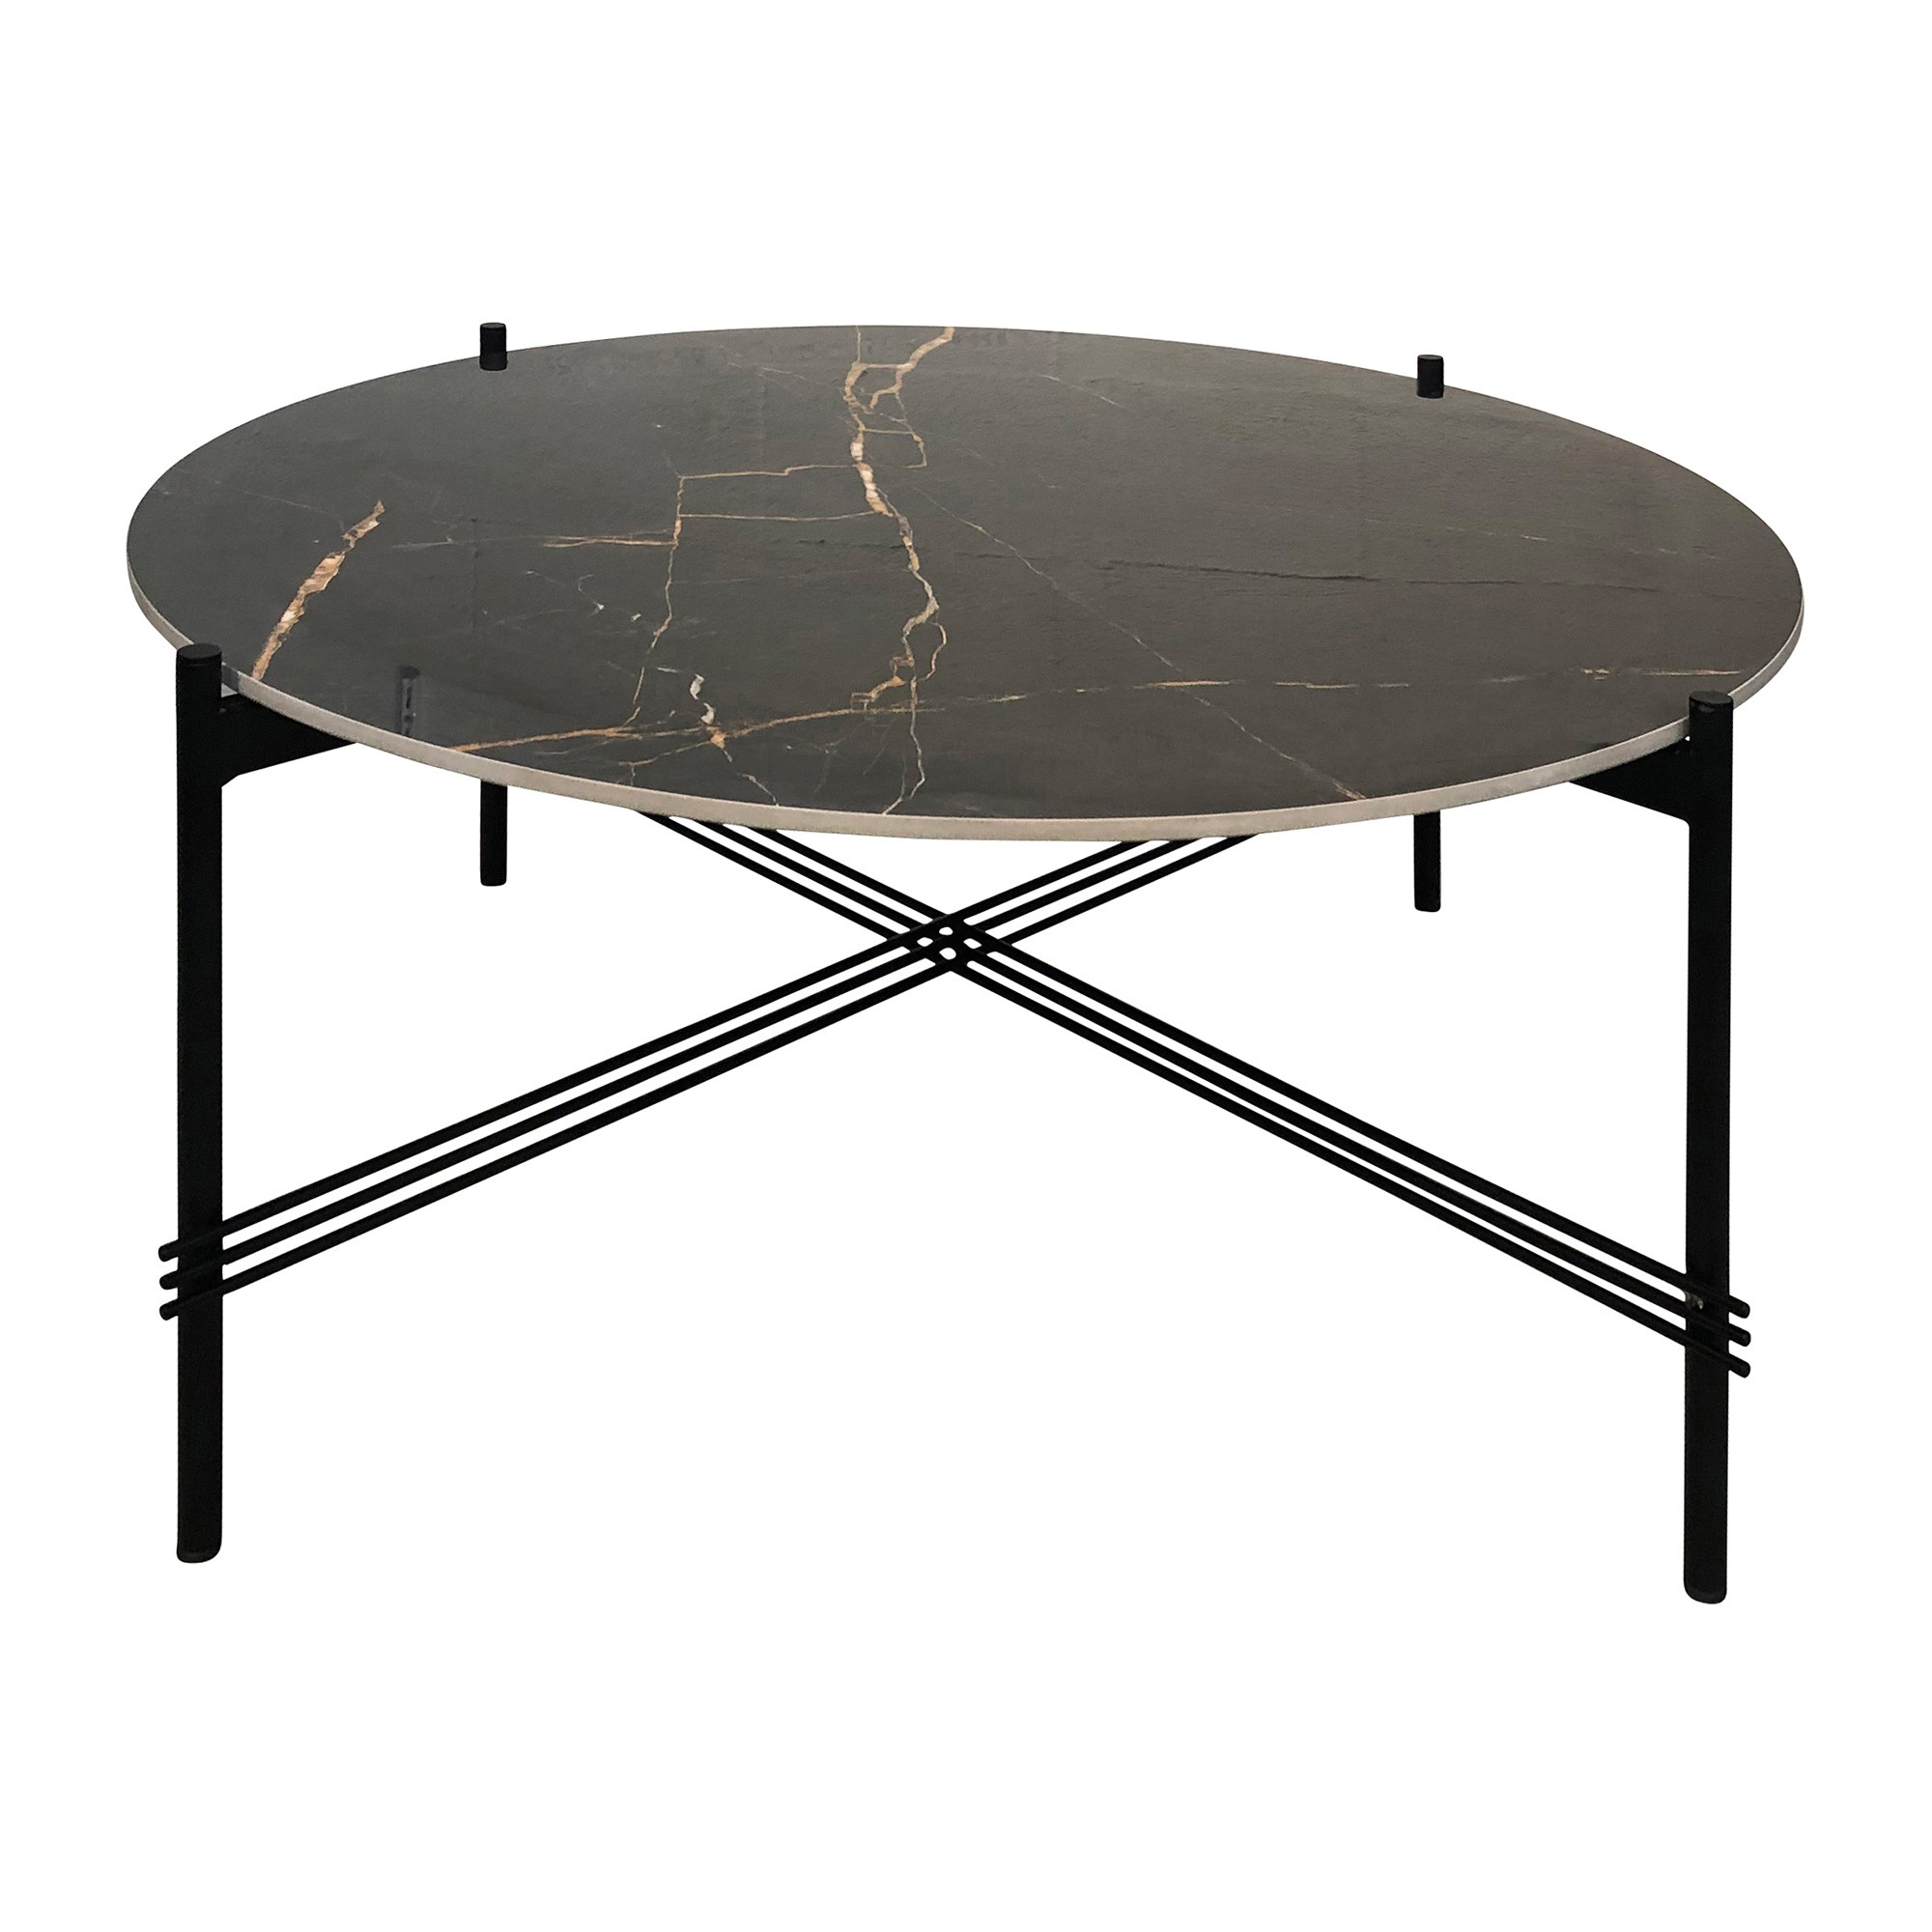 Cataniello Porcelian & Iron Round Coffee Table, 86cm, Black